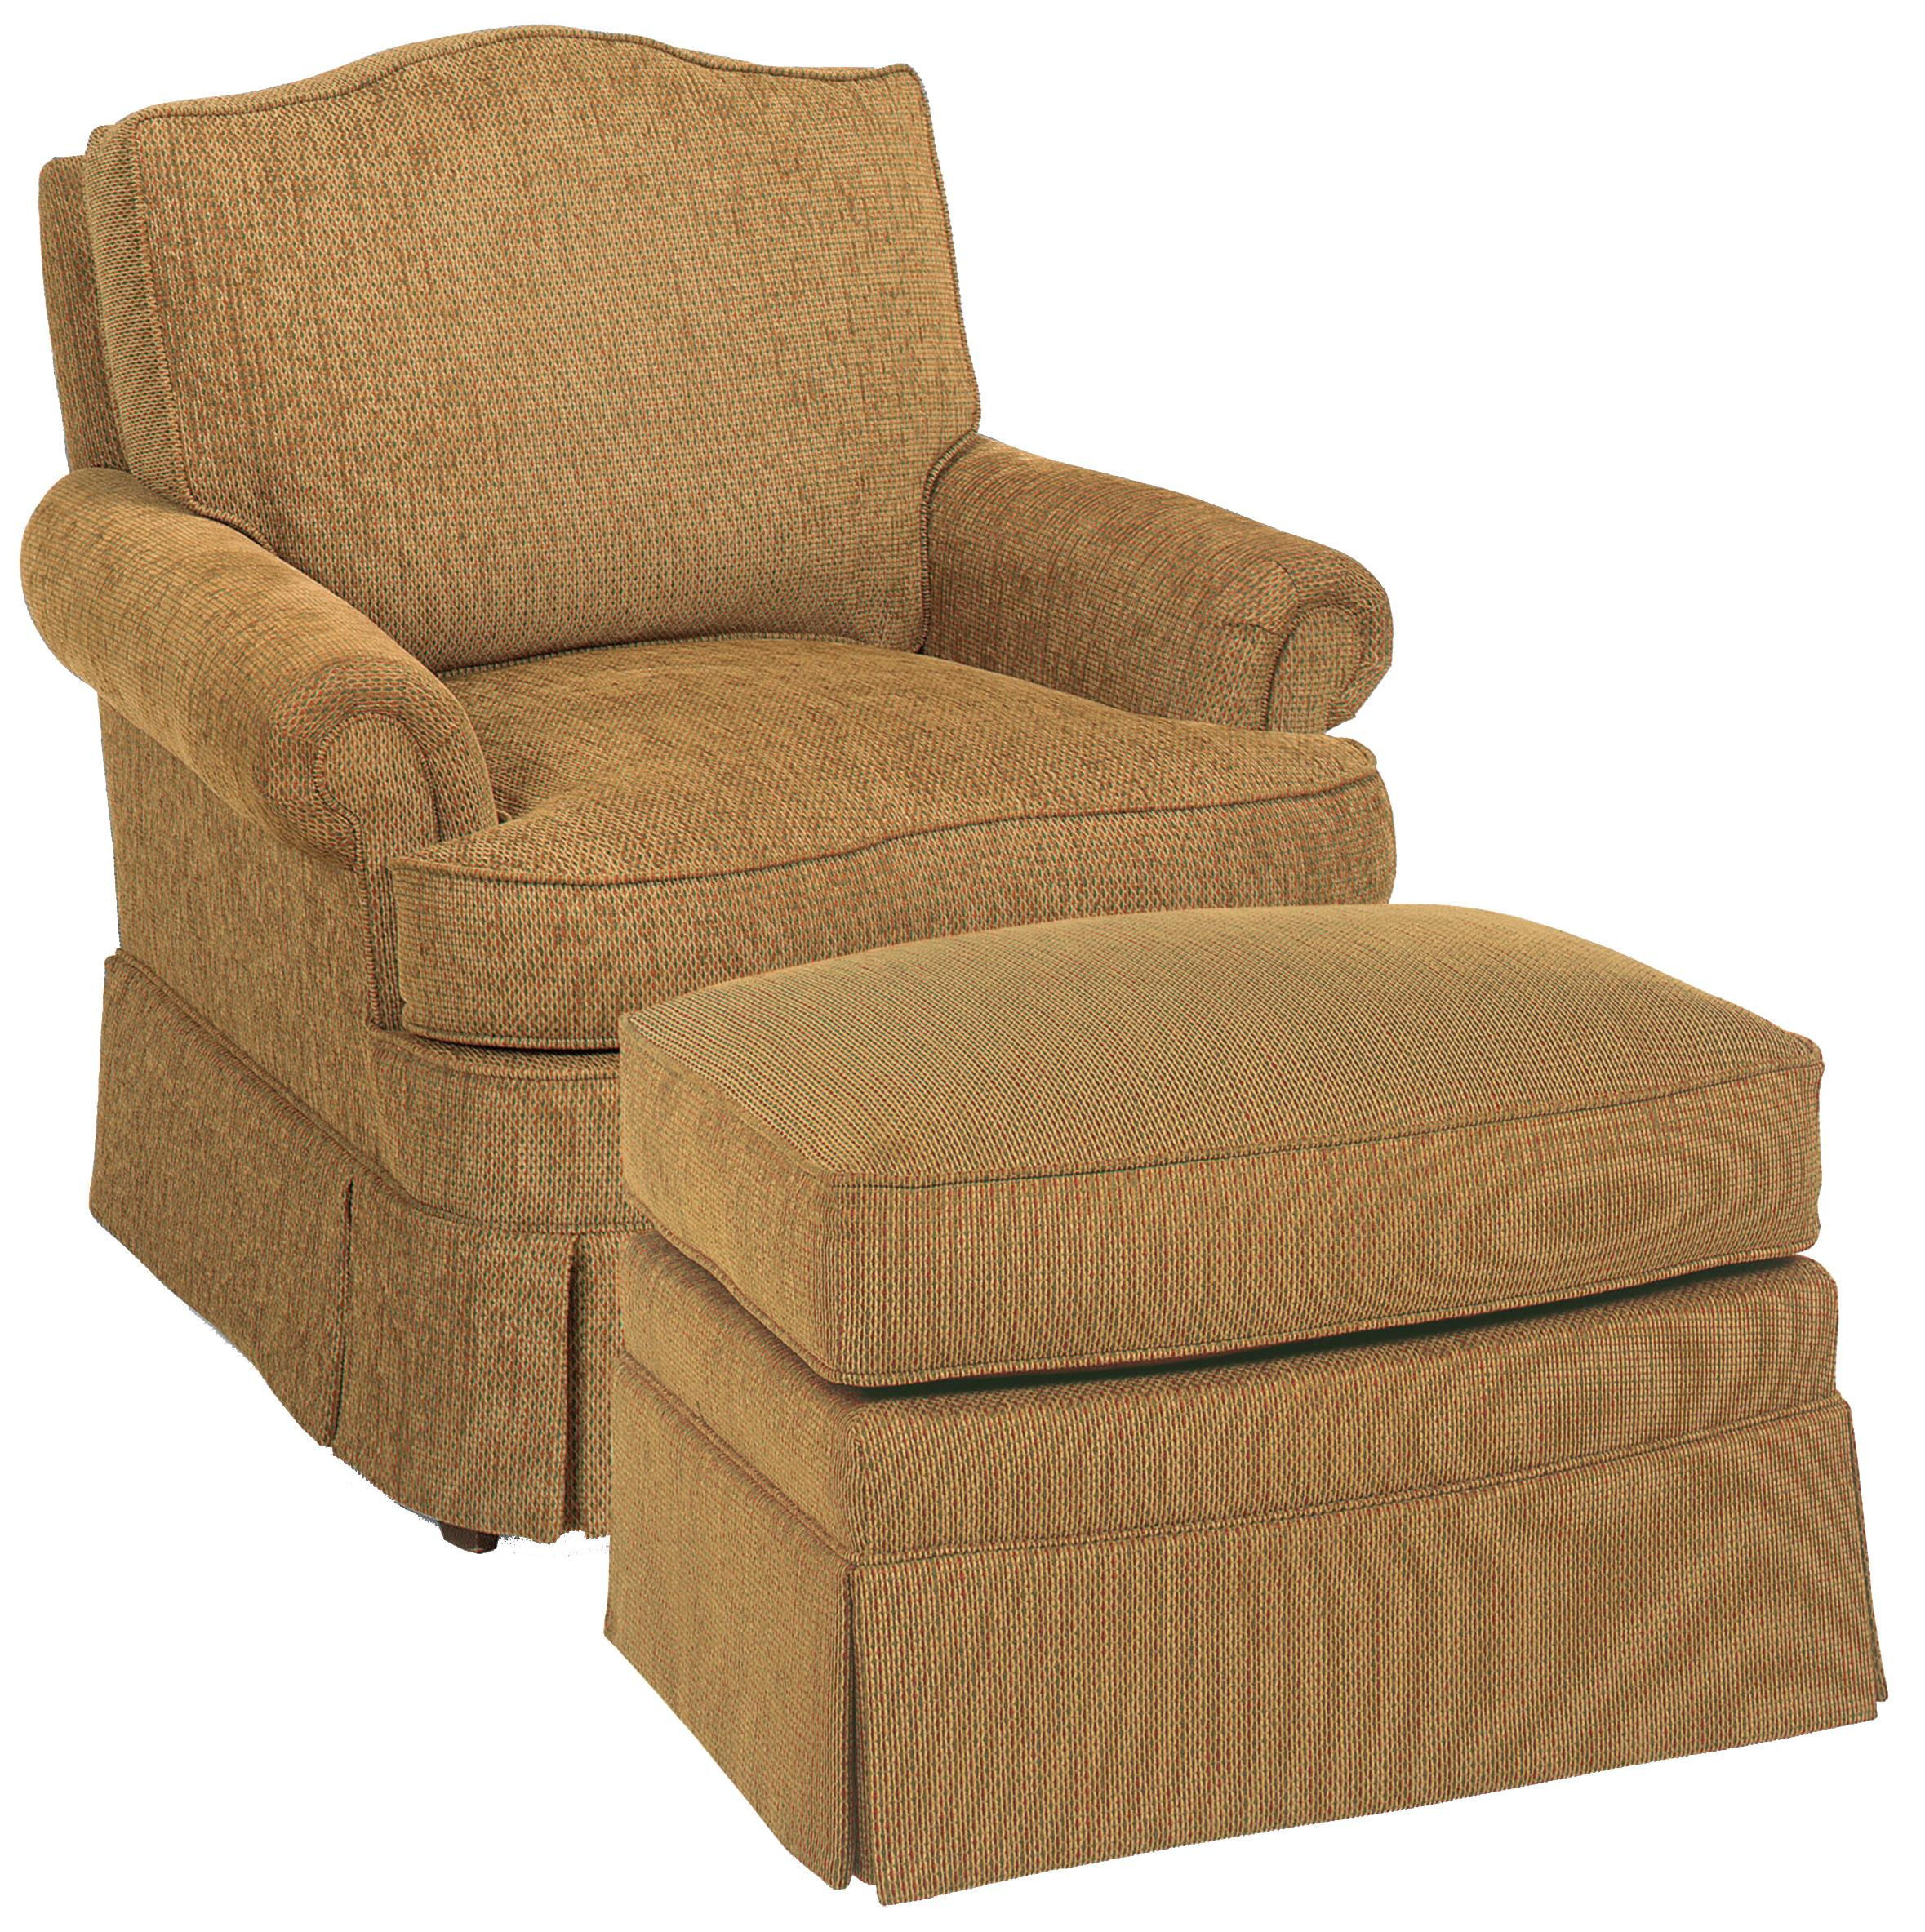 Fairfield Chairs Swivel Glider Chair & Ottoman  - Item Number: 1454-32+20